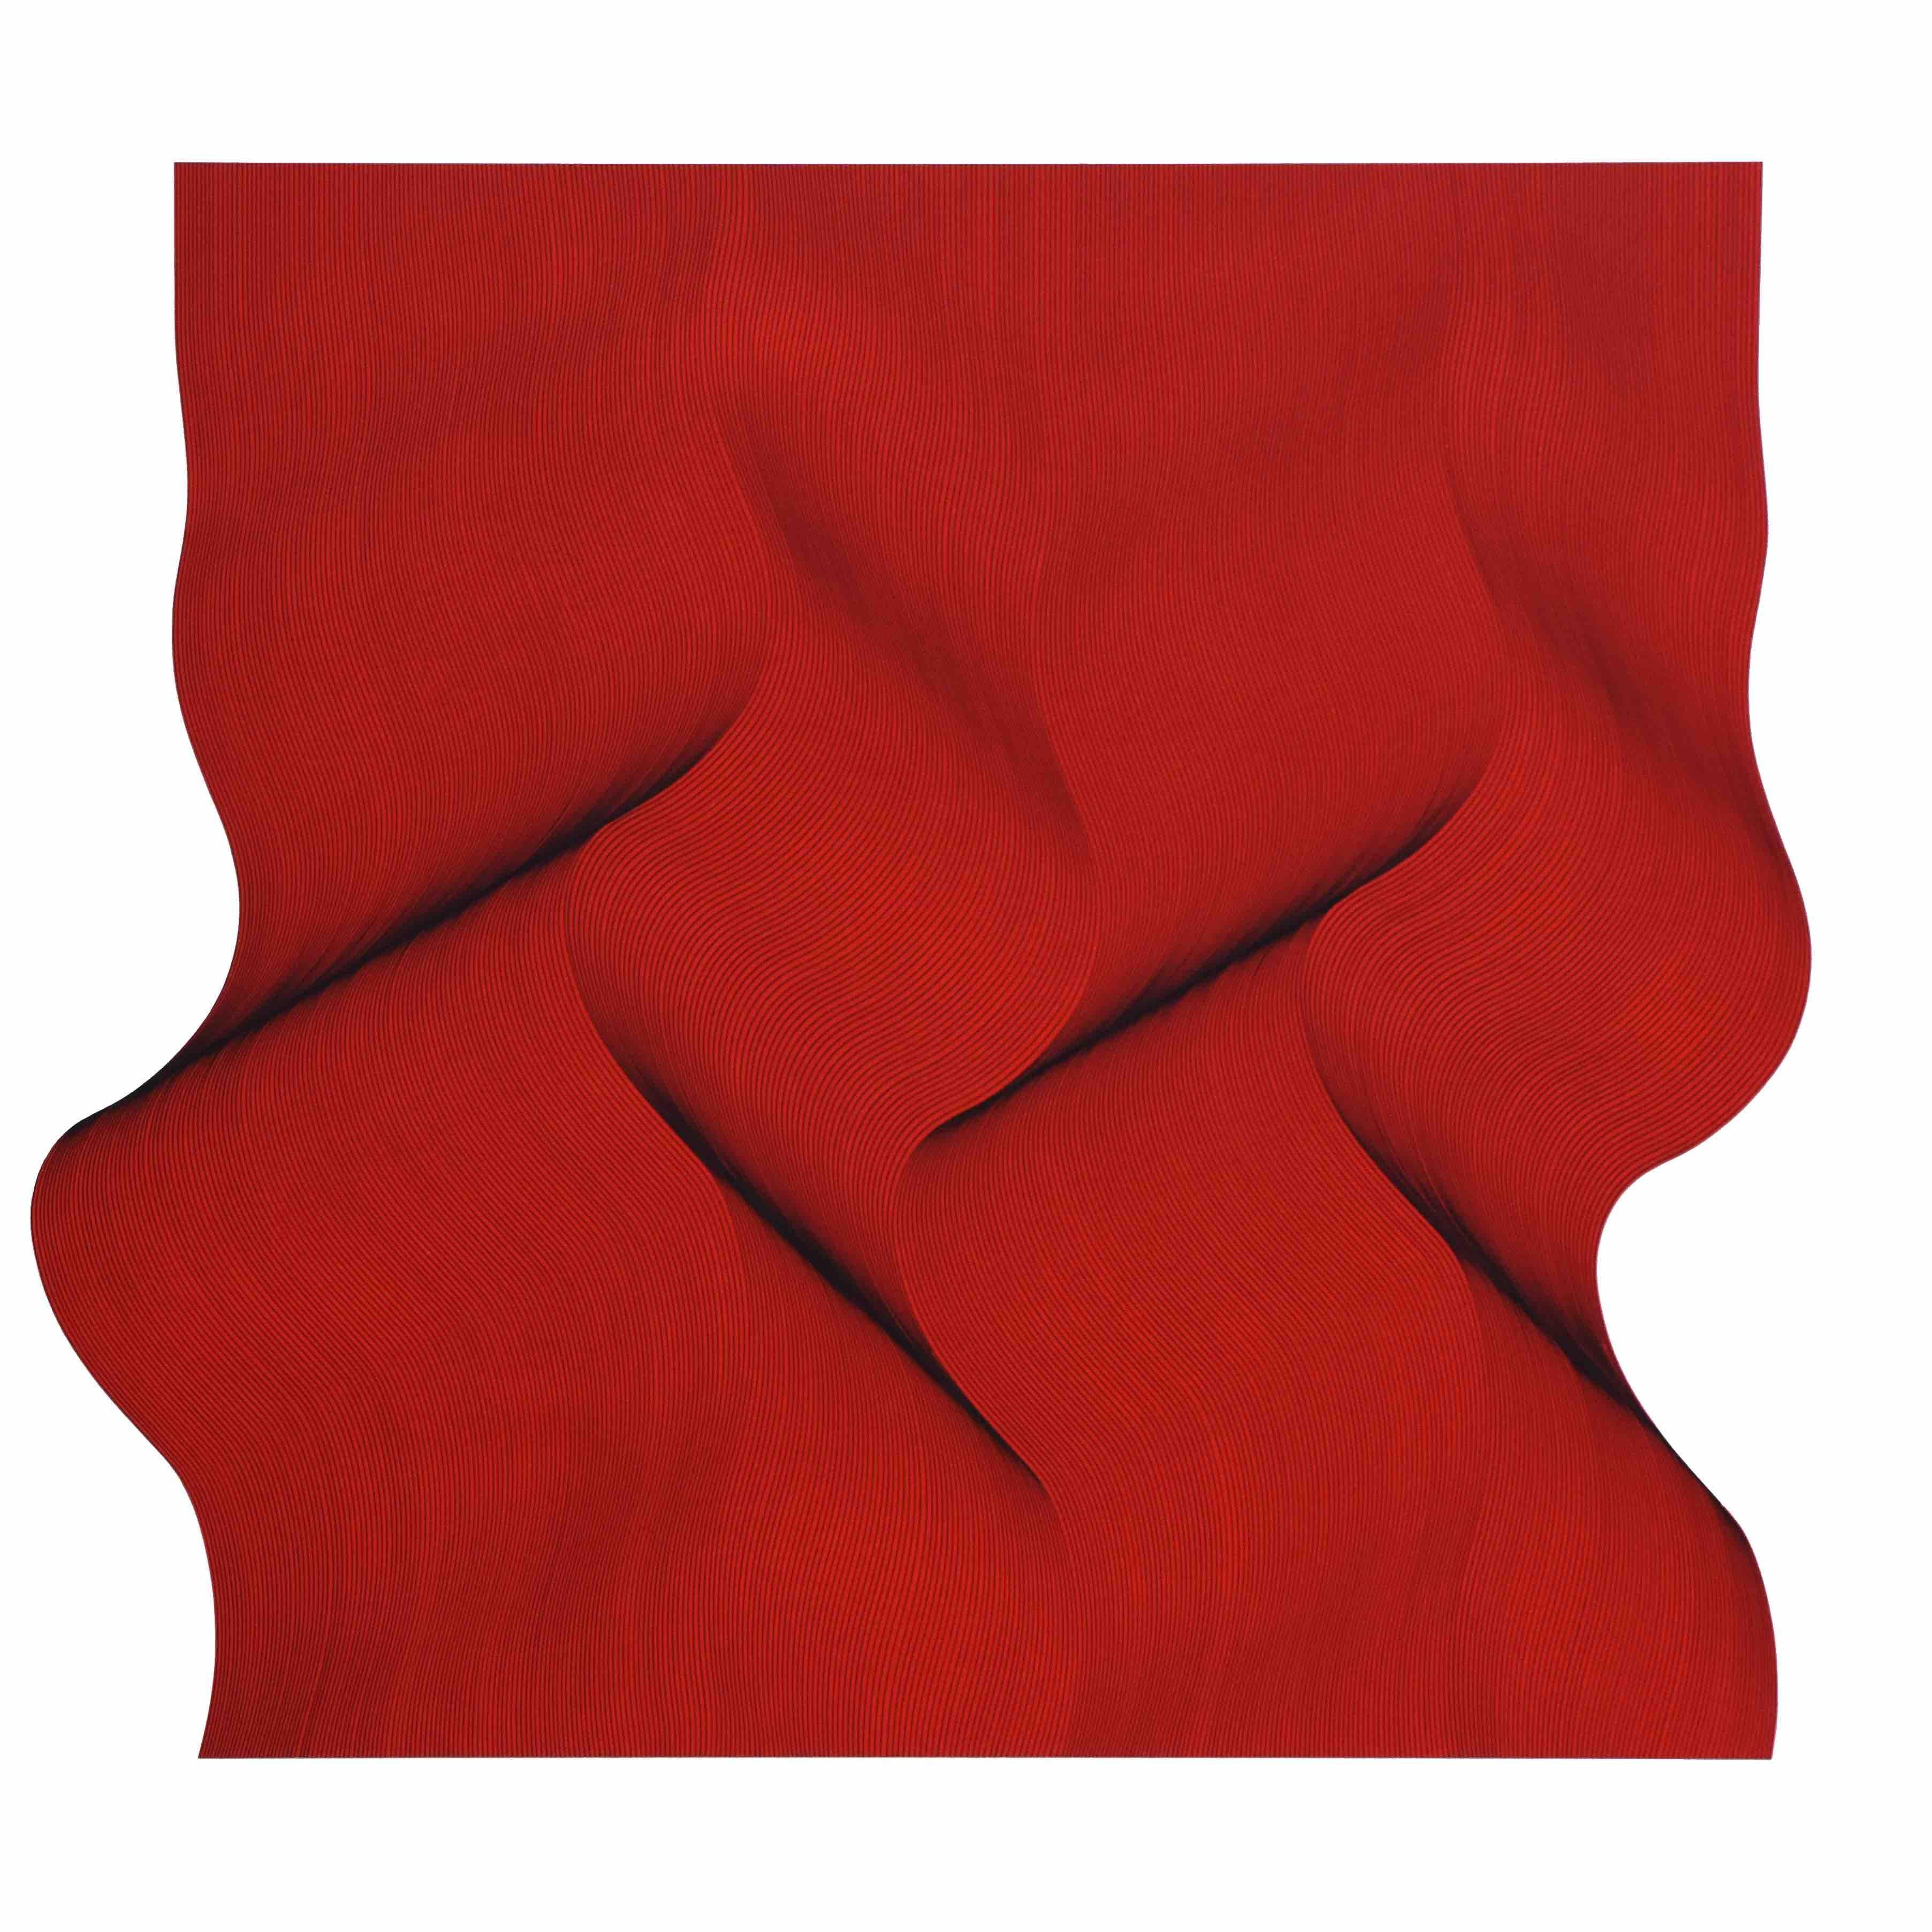 Movement in red - abstract painting